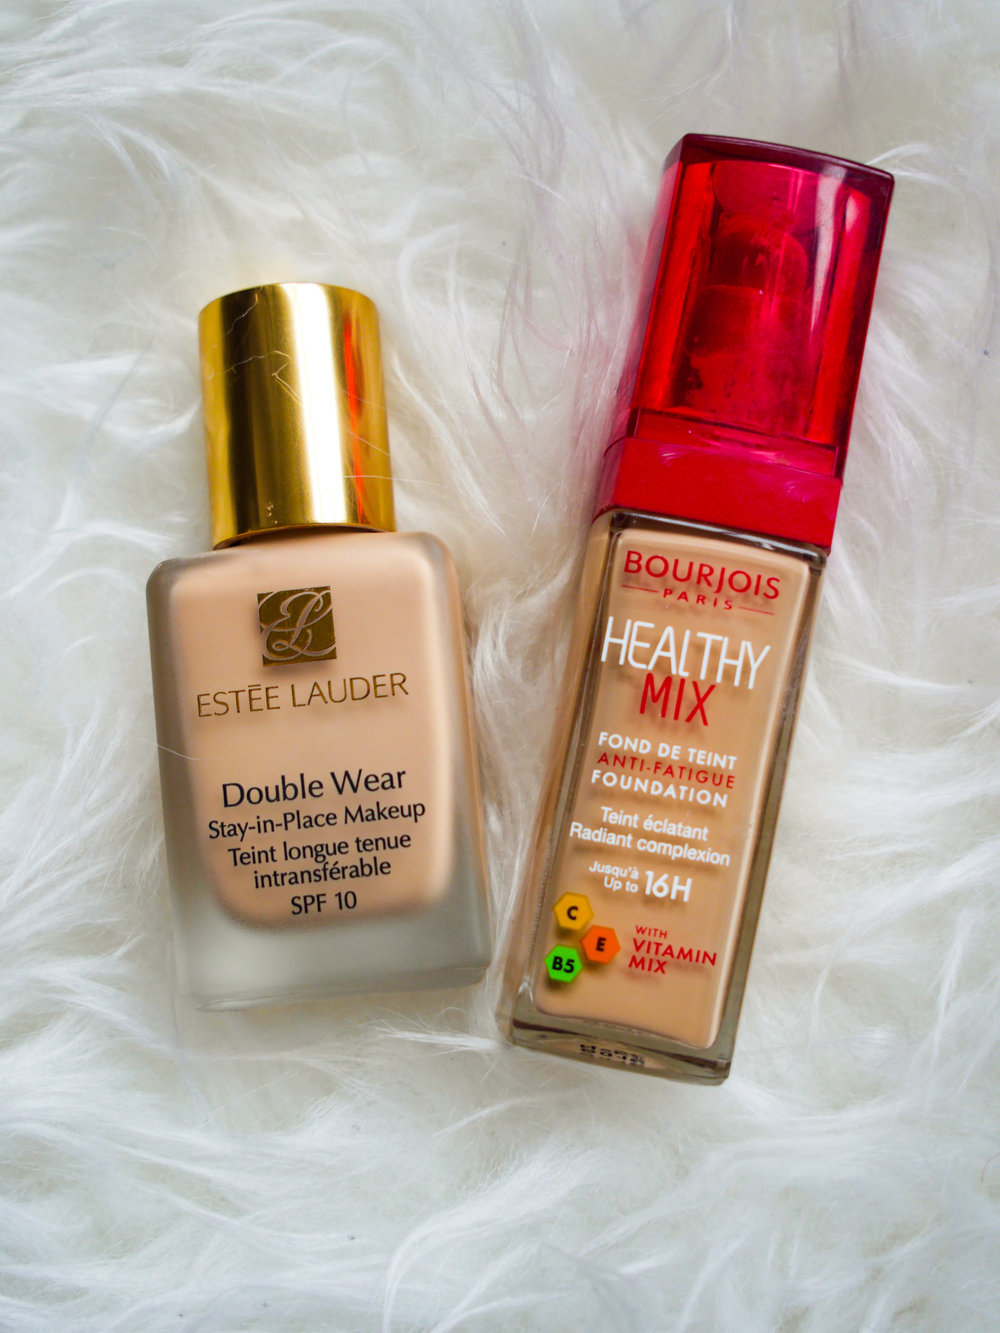 Estee Lauder Double Wear Foundation with Bourjois Paris Healthy Mix Foundation